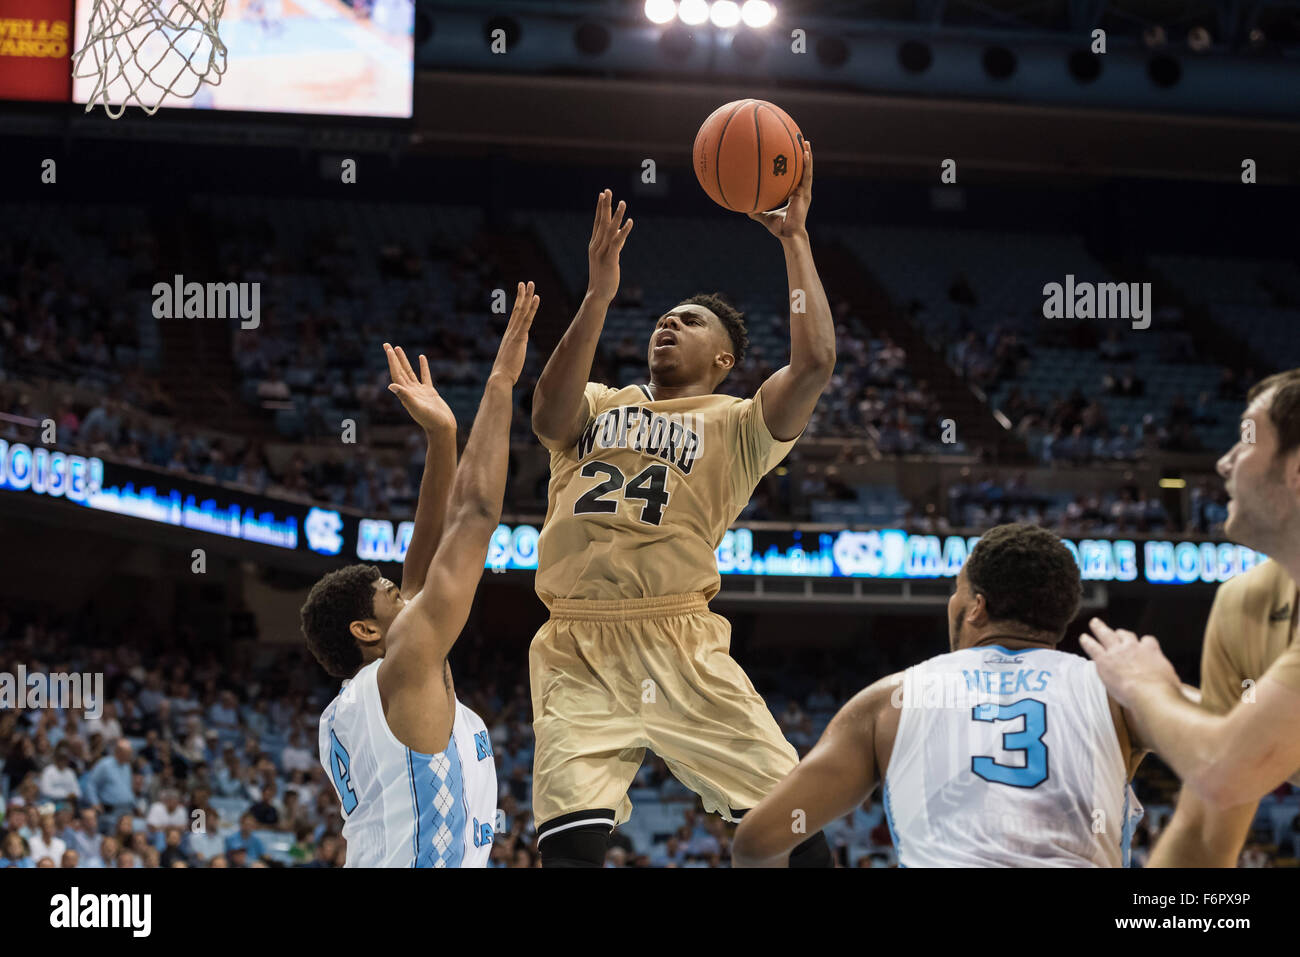 Chapel Hill, North Carolina, Stati Uniti d'America. Xviii Nov, 2015. Wofford Terrier avanti Justin Gordon (24) Immagini Stock